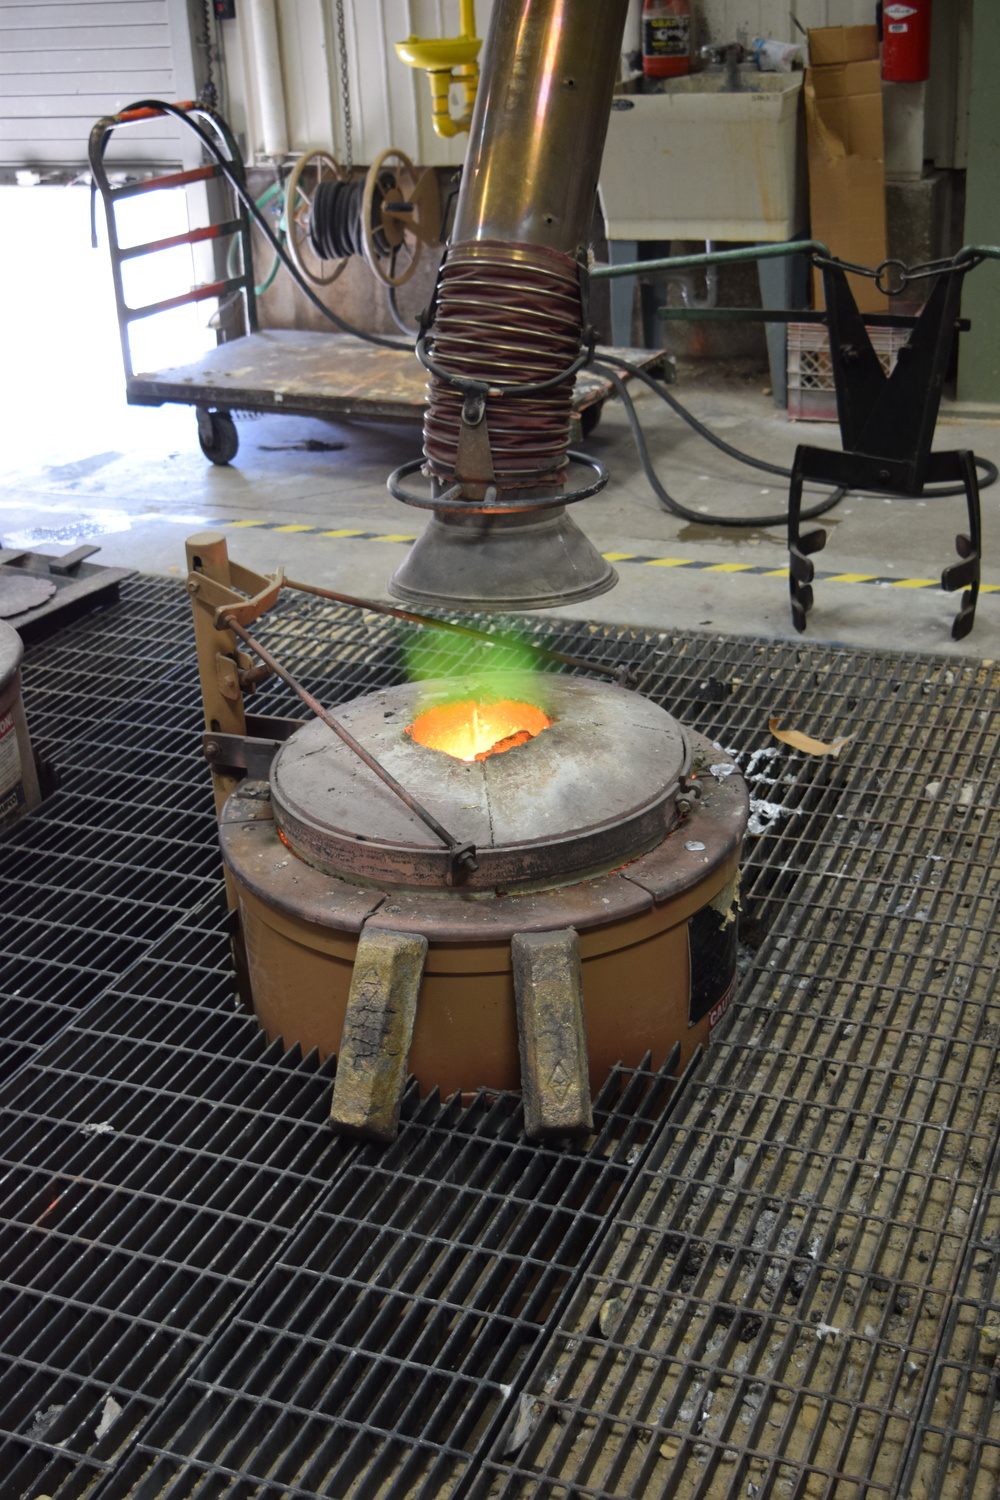 The forge heating up with bronze ingots.